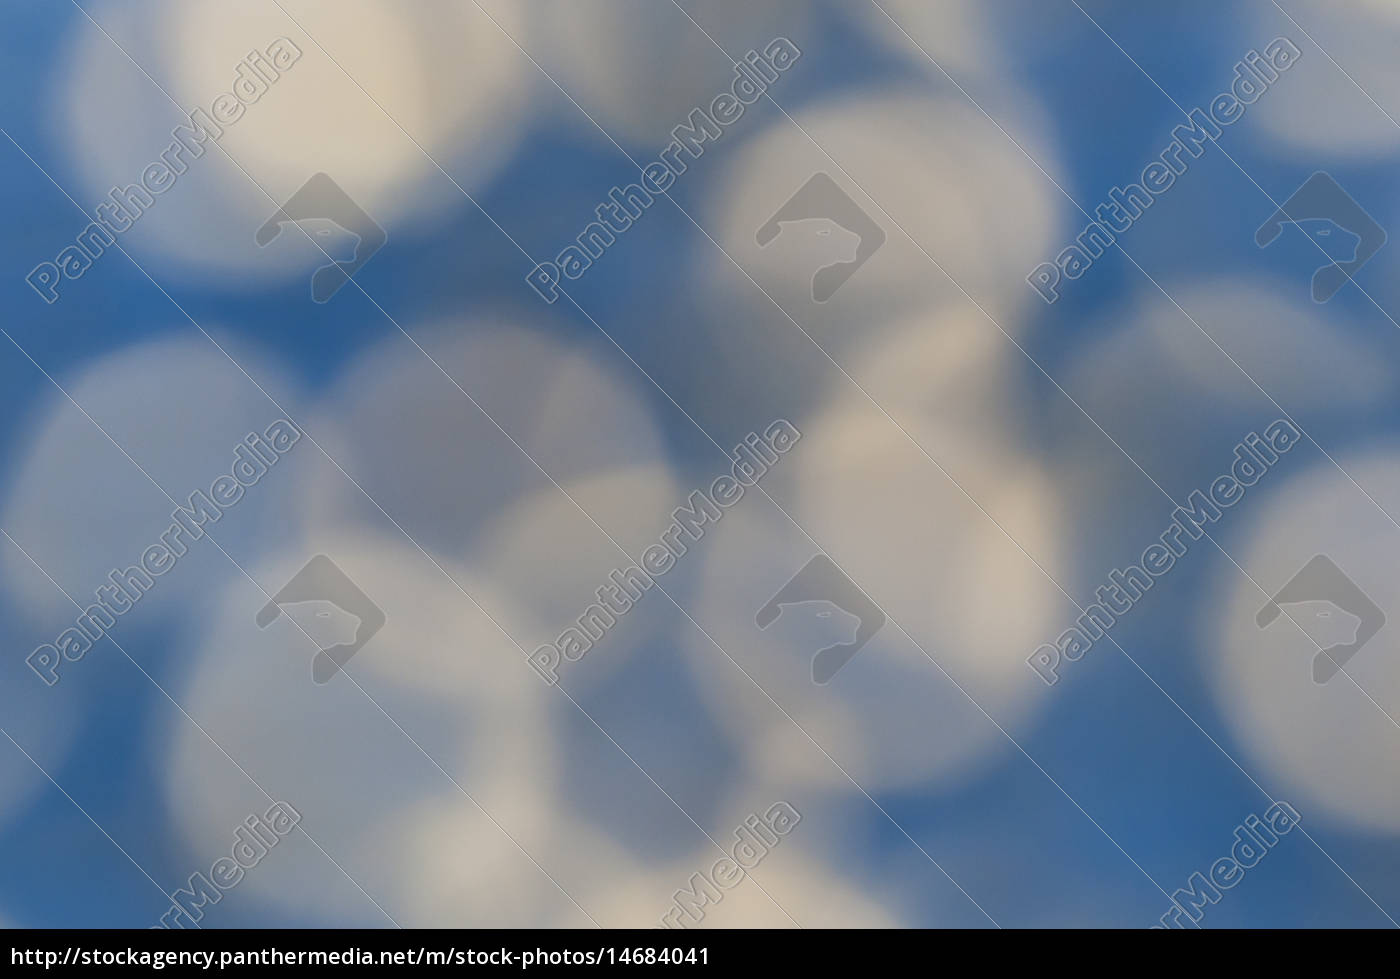 abstract, blurred, background - 14684041